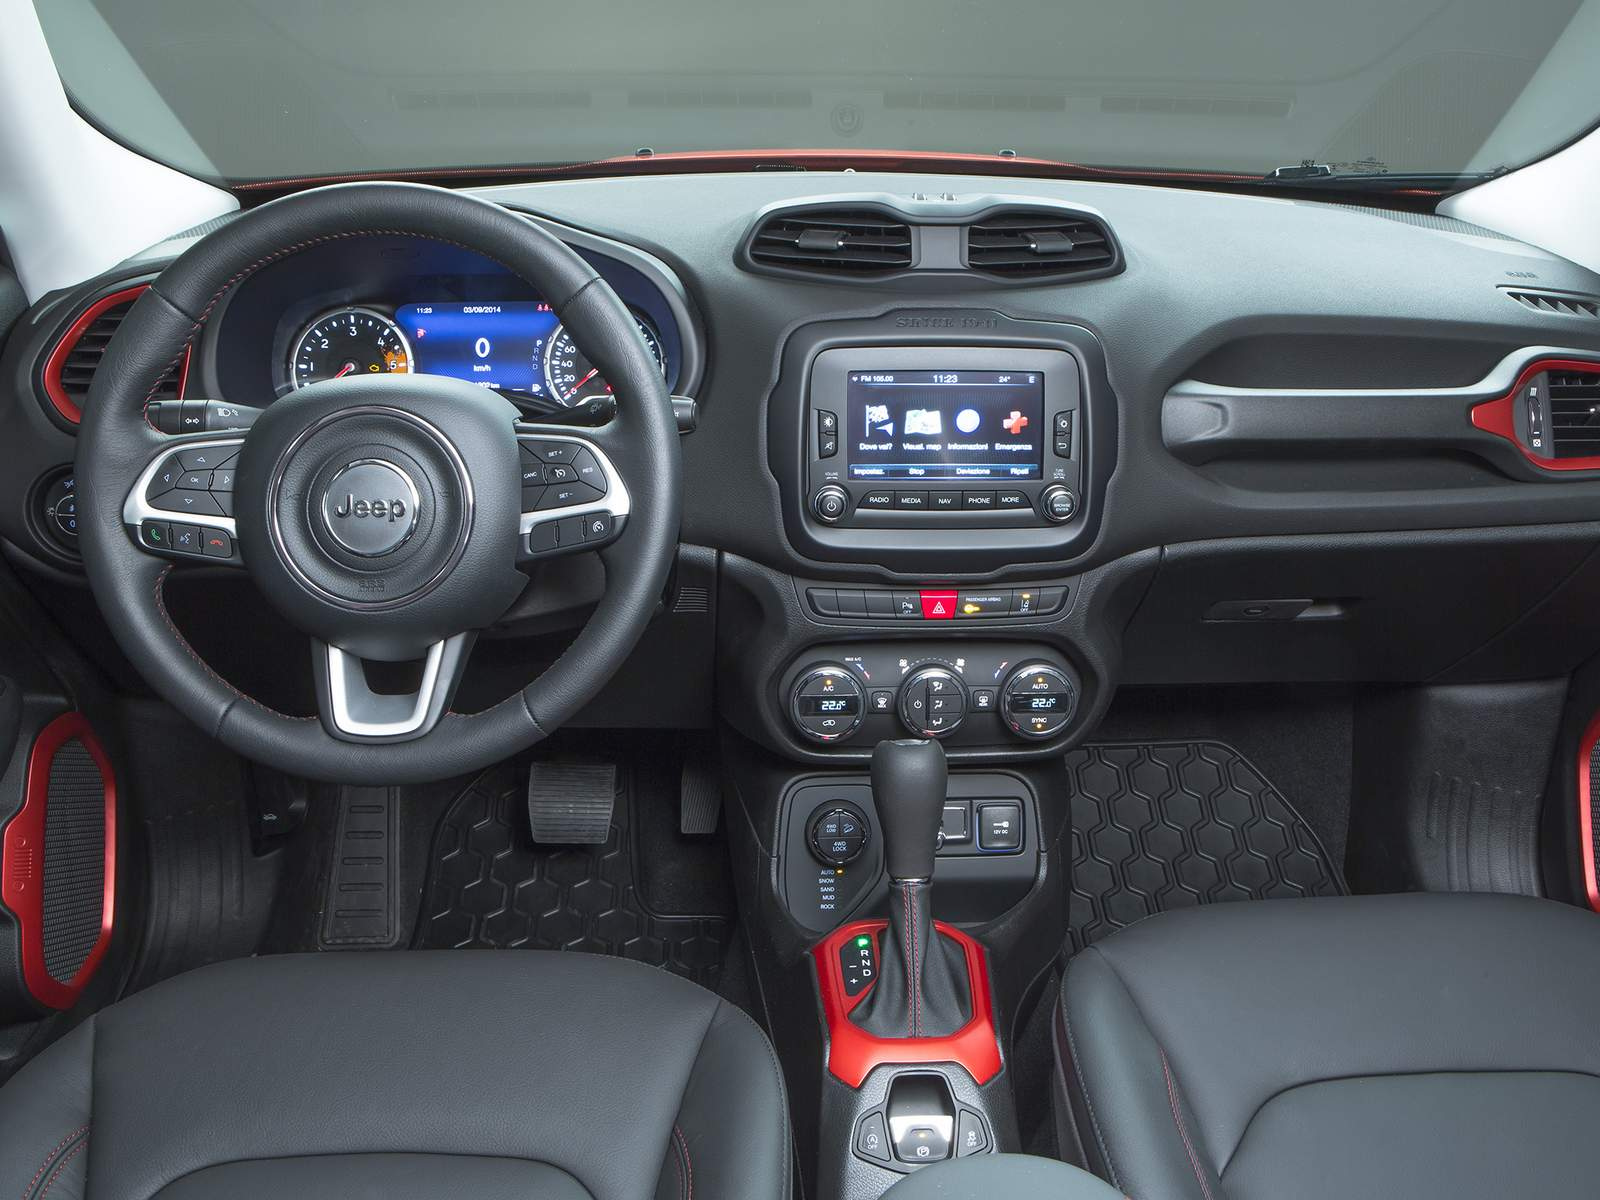 Jeep Renegade Trailhawk - interior